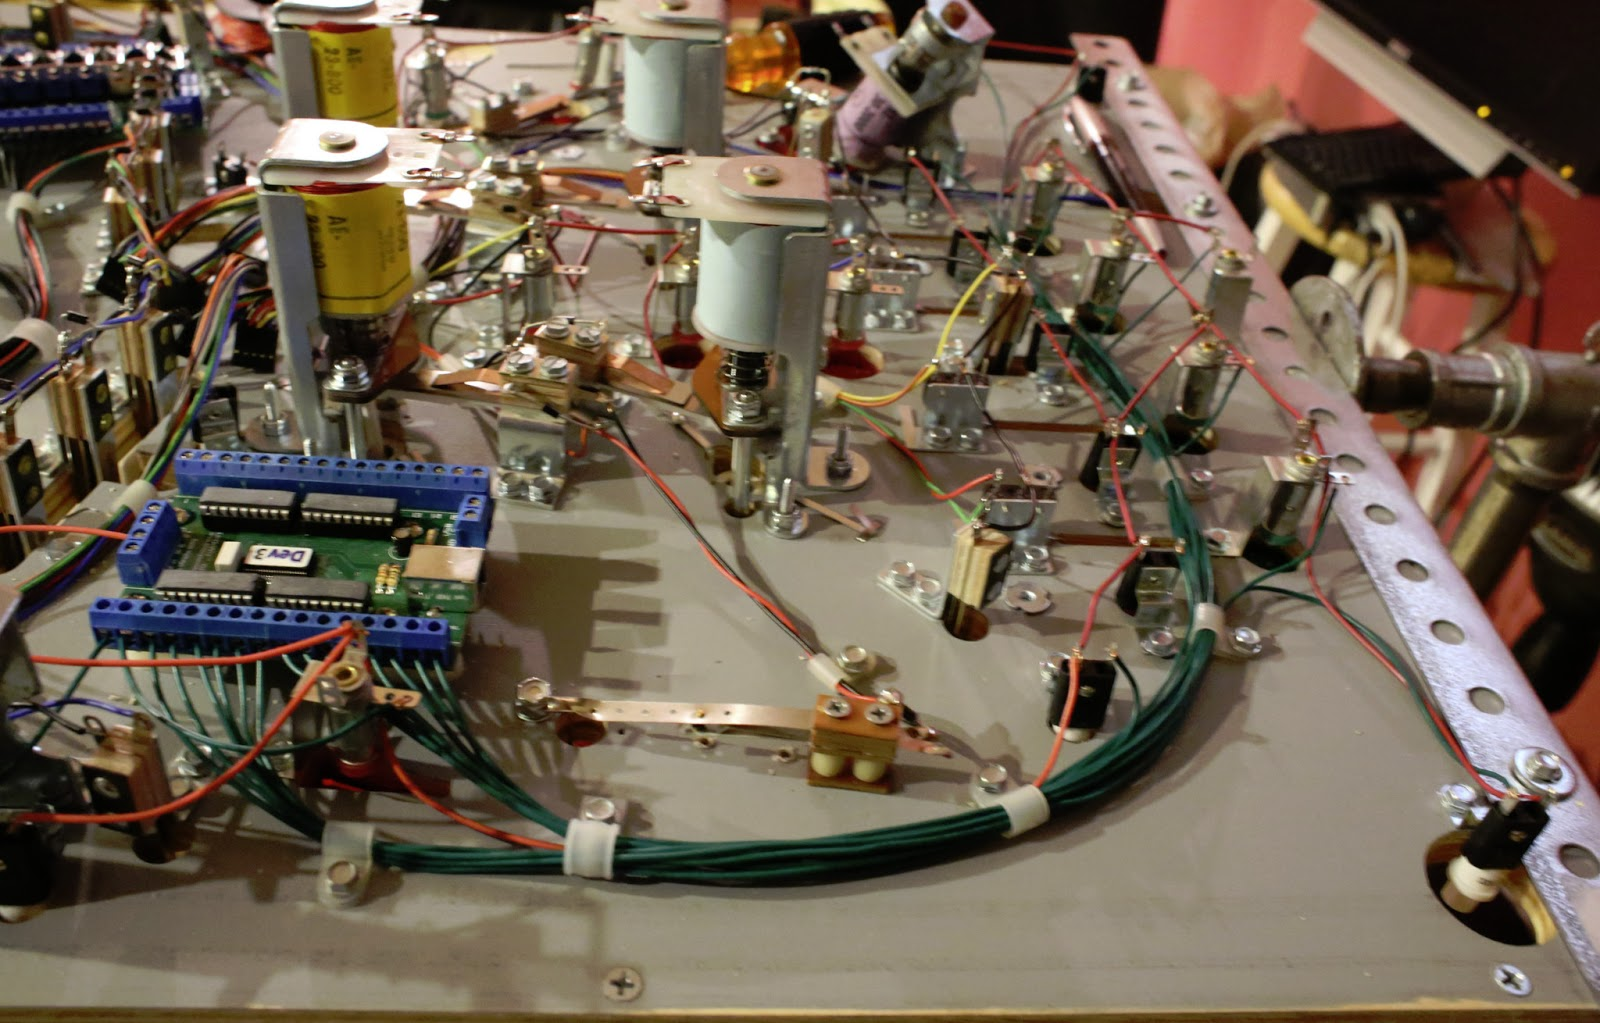 pinball chameleon s guide to diy pinball machine construction the rh pinballchameleon blogspot com